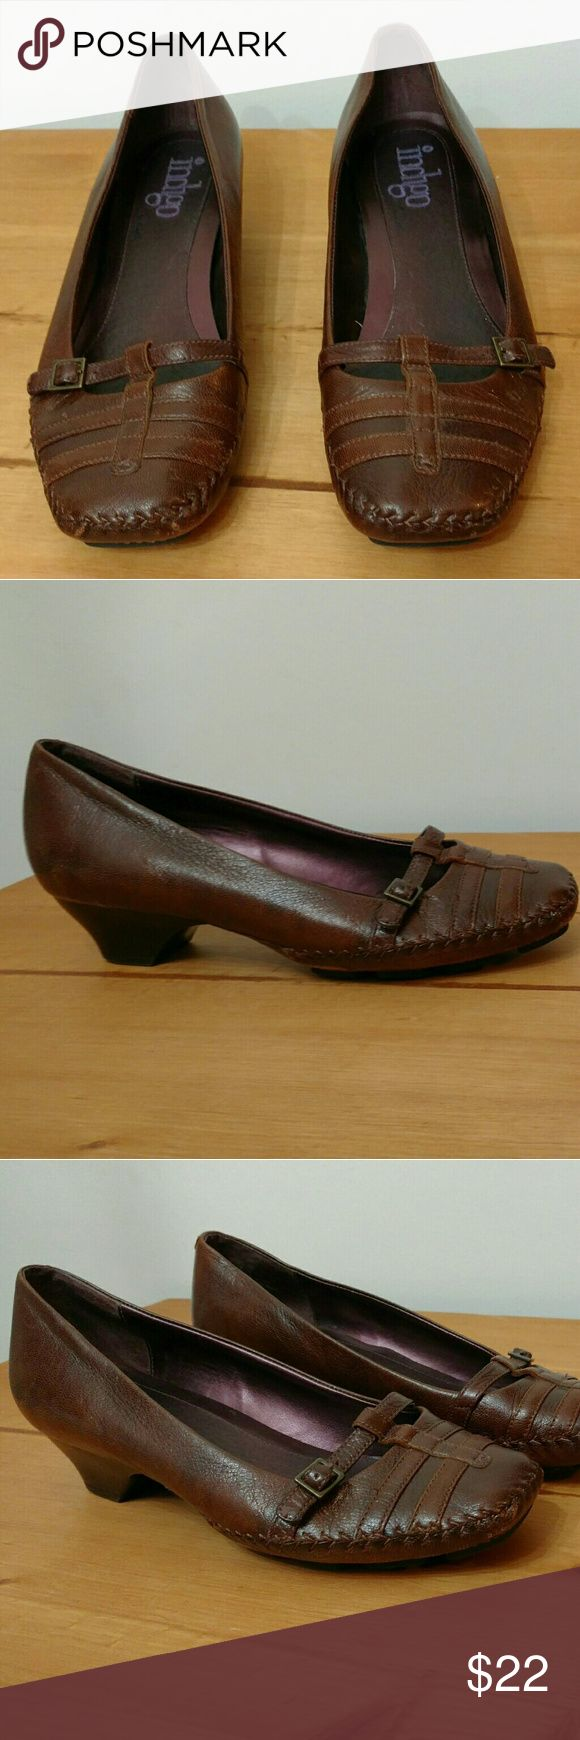 Leather Indigo Low Heel Loafers sz 8 Pre-loved Indigo loafers in gorgeous brown leather. Low heel and comfortable rubber flex sole. Some minor scuffing on back heels as pictured but overall good condition. Size 8.  SUPER fast same day or next business day shipping!! Indigo Shoes